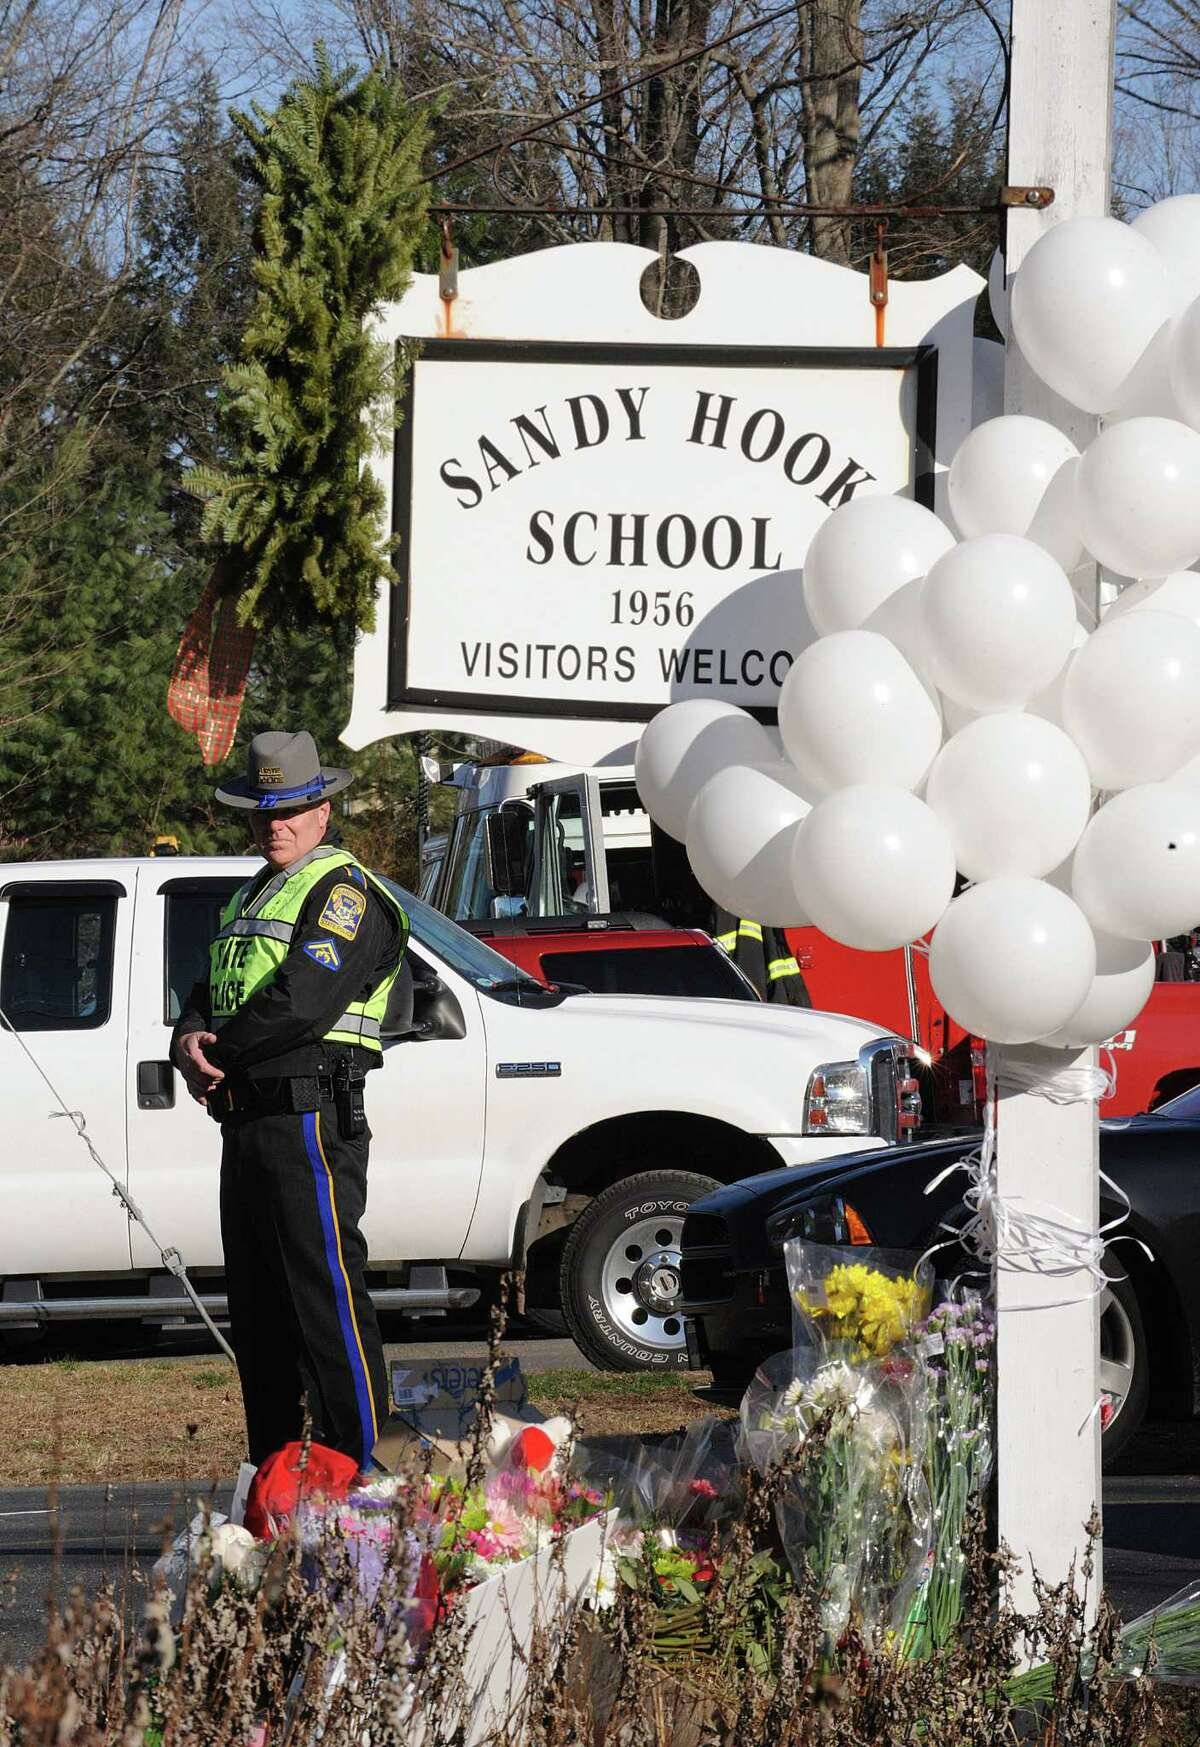 The 2012 shooting at the Sandy Hook Elementary School in Newtown, Conn., left 26 dead. The FBI says planning for the attack had begun 21 months earlier.